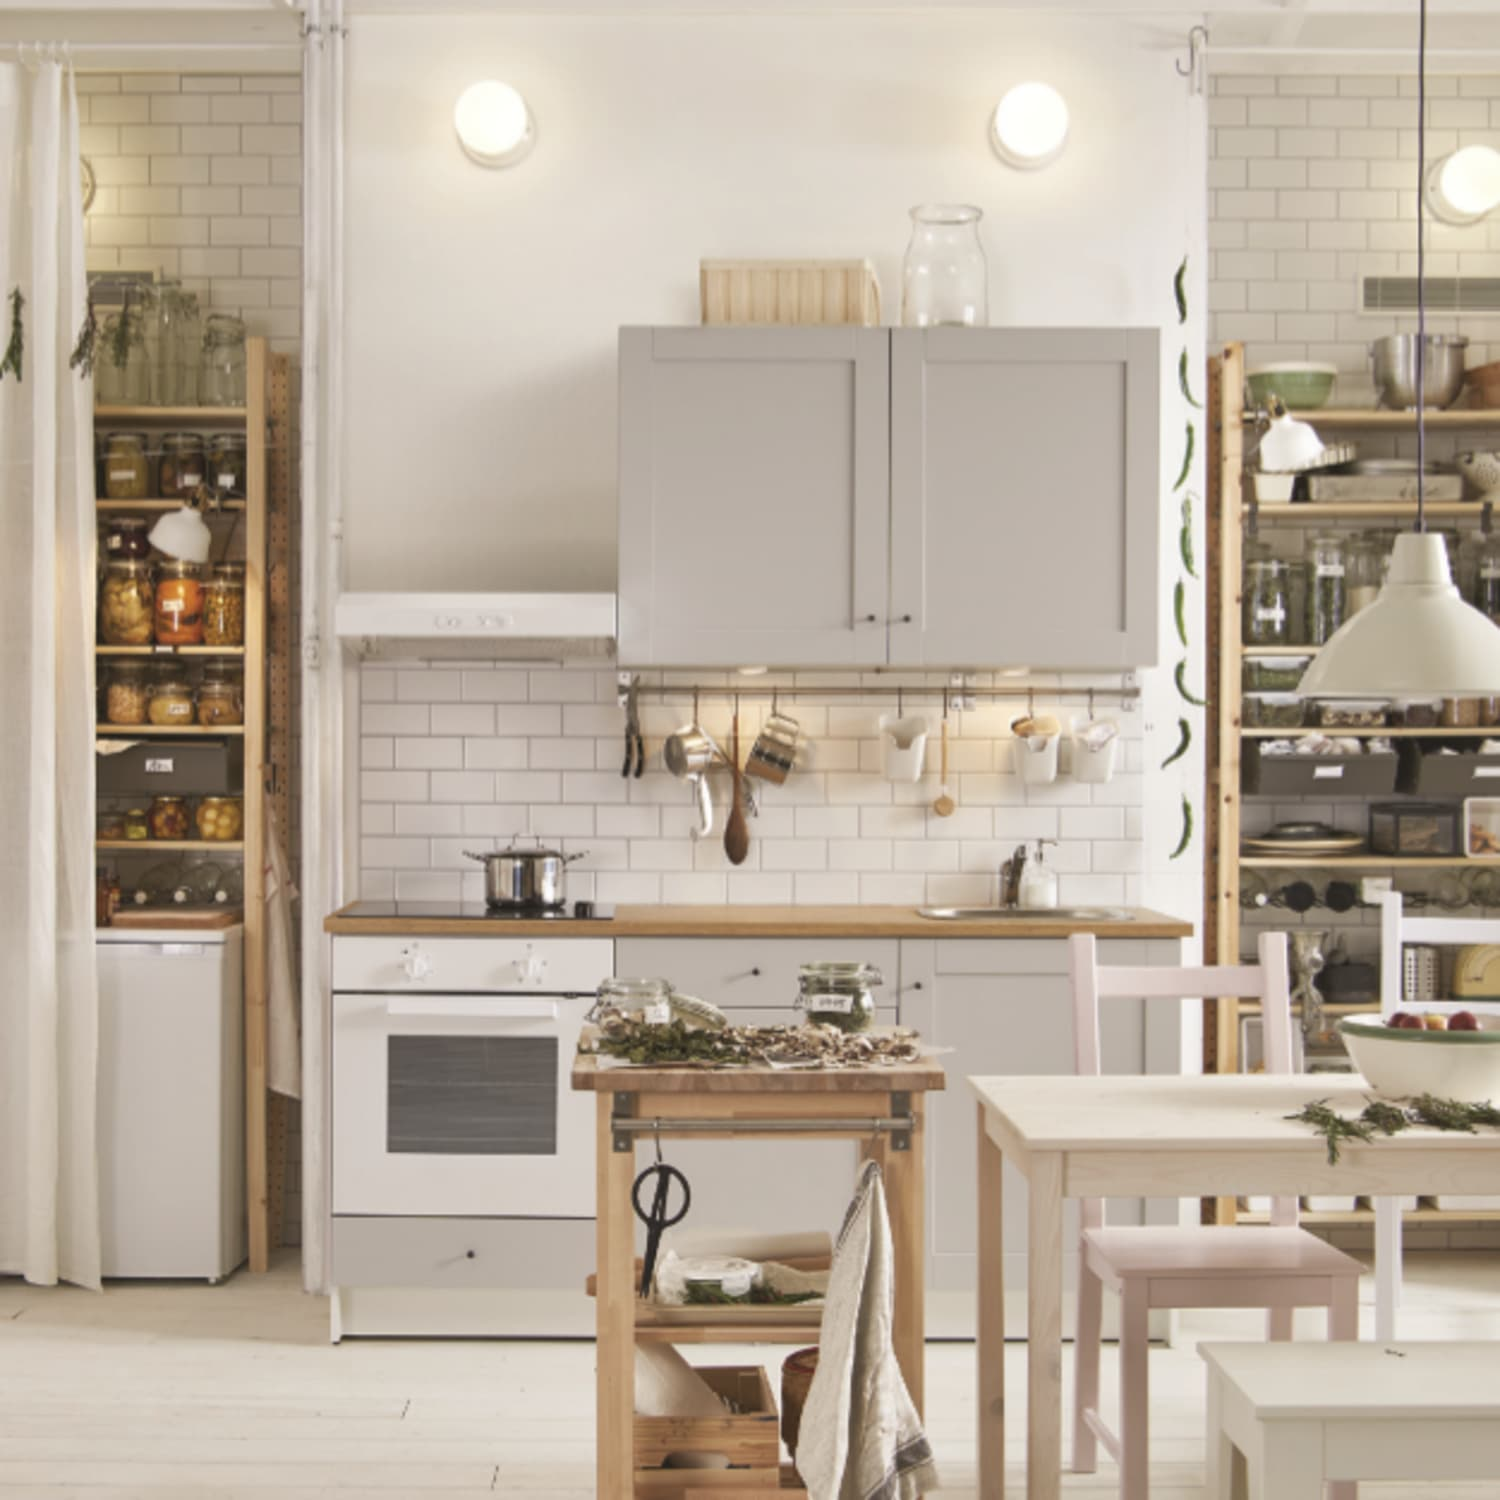 Ikea 2017 Catalog Preview 10 Products Were Excited About